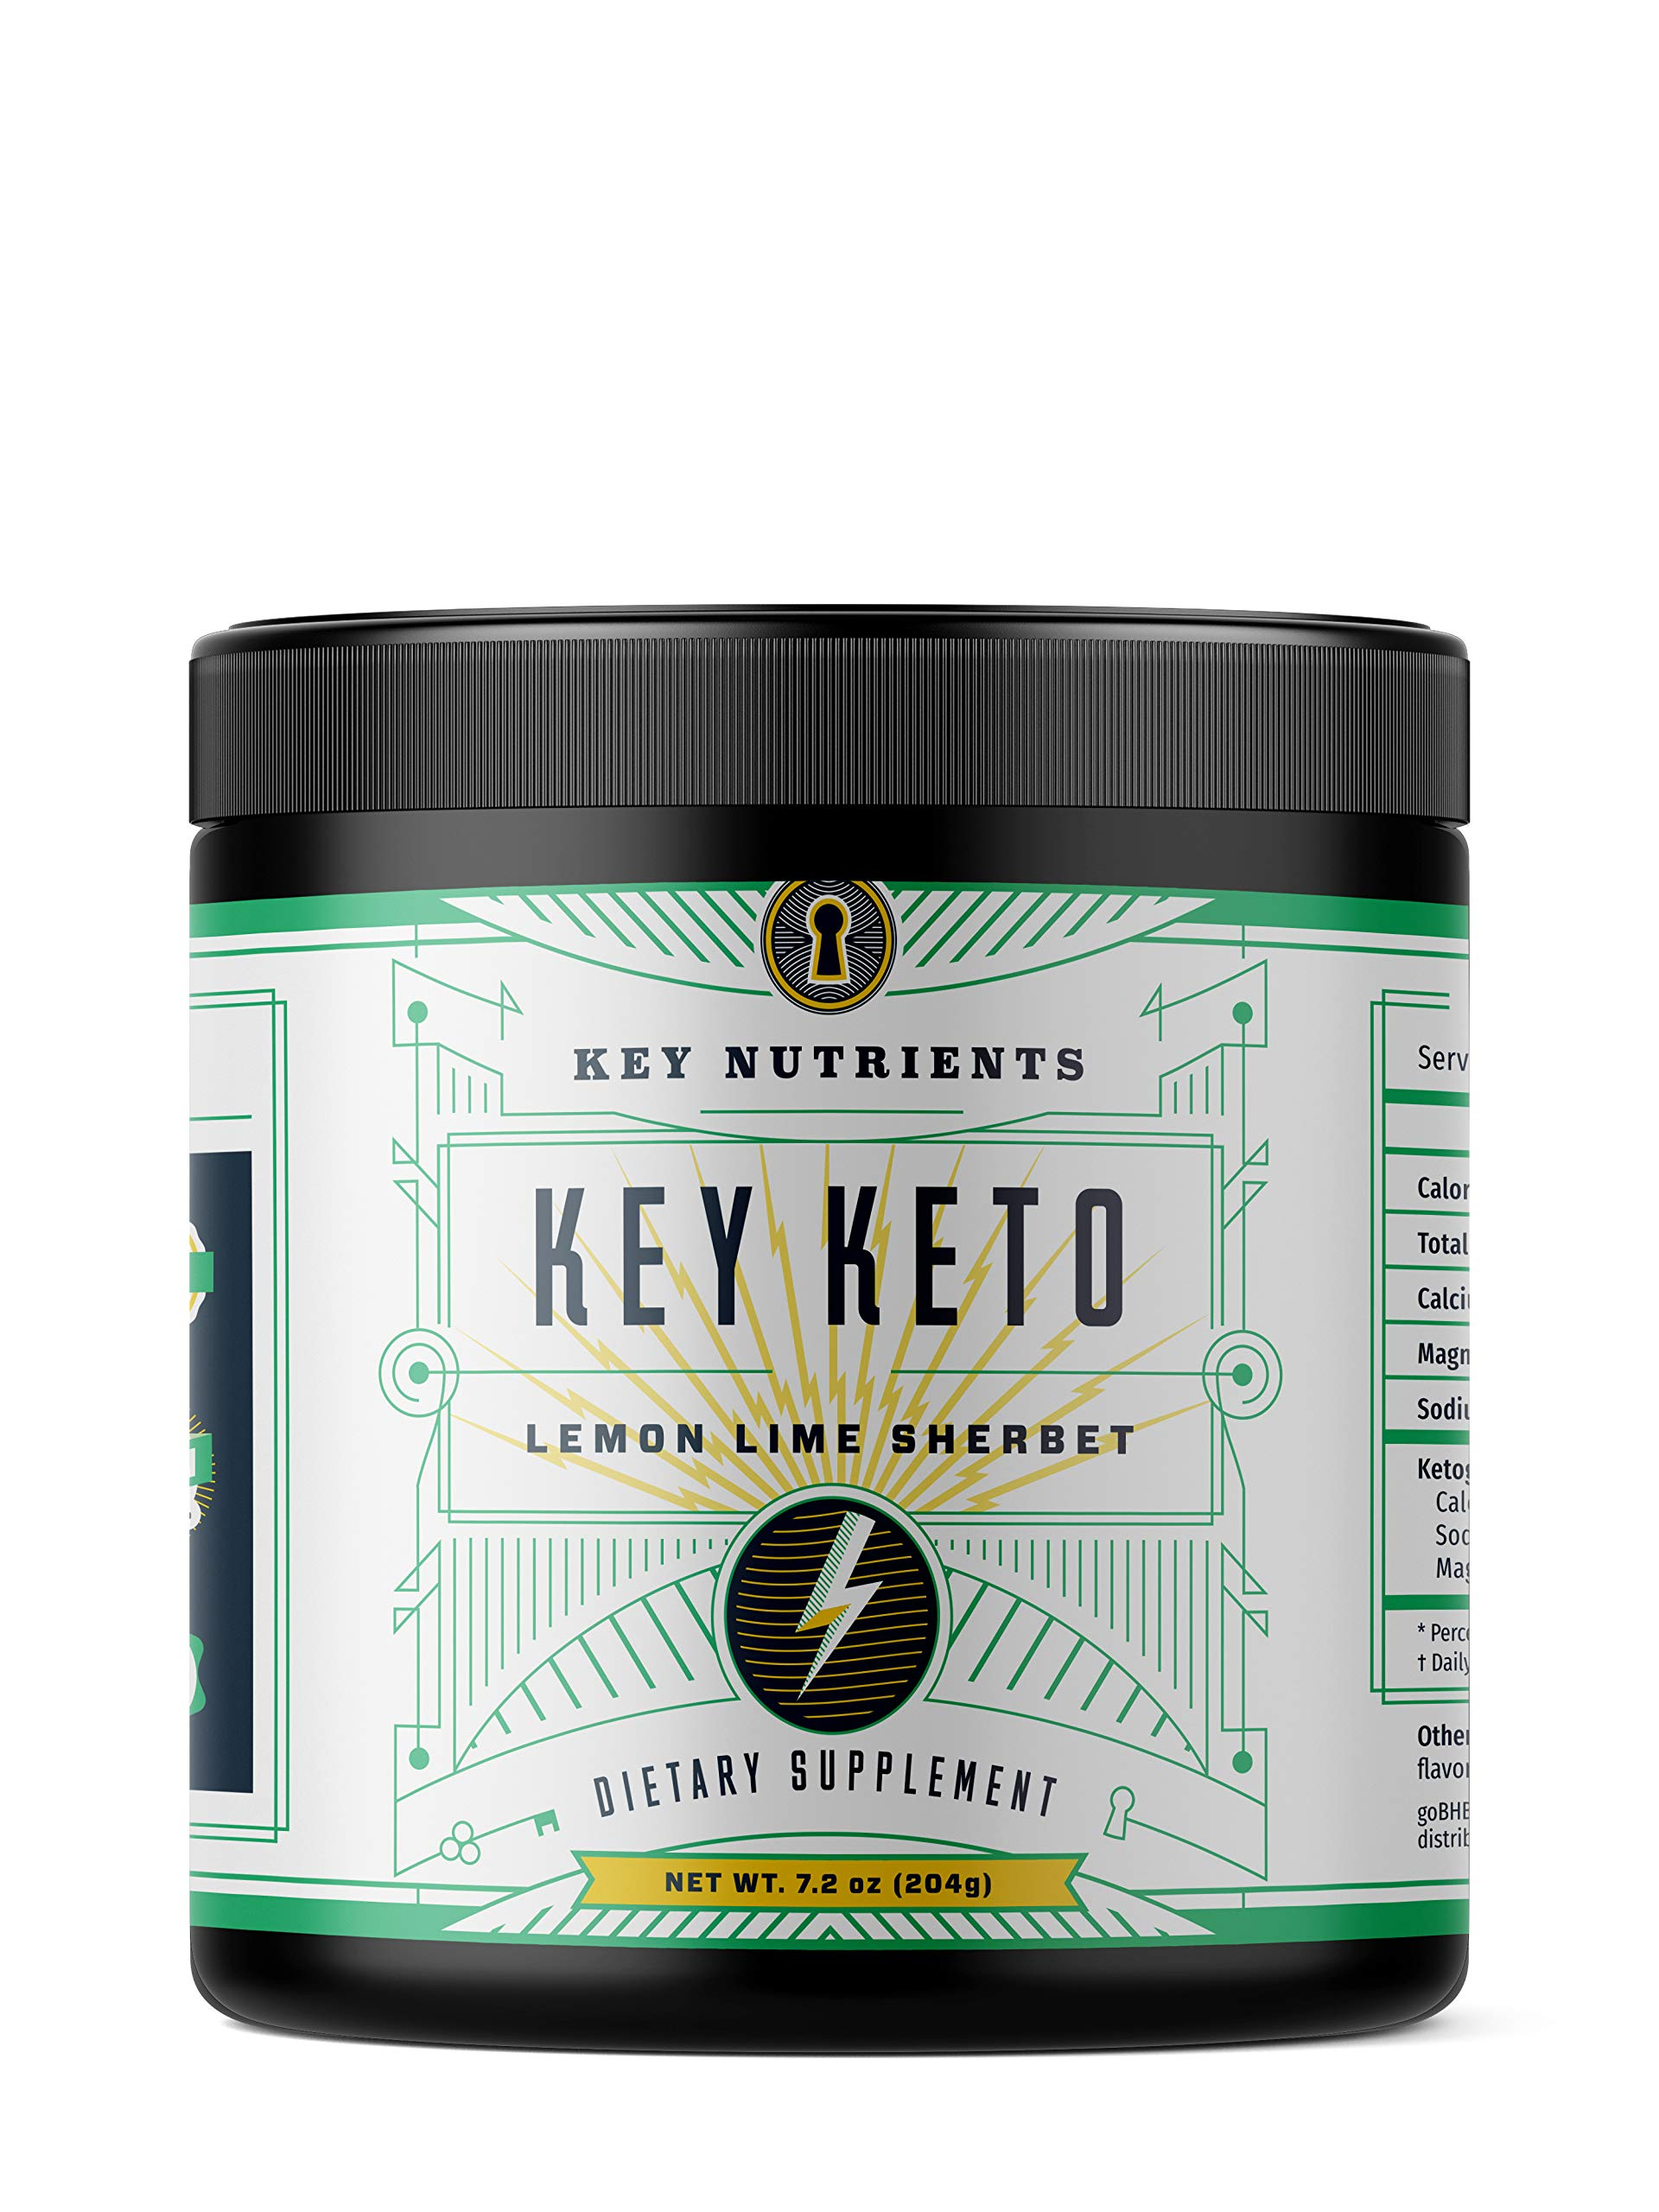 Exogenous Ketone Supplement, Key Keto: Patented BHB Salts (Beta-Hydroxybutyrate) - Formulated for Ketosis, to Burn Fat, Increase Energy and Focus, Supports a Keto Diet. Lemon Lime Sherbet 15 Servings by KEY NUTRIENTS